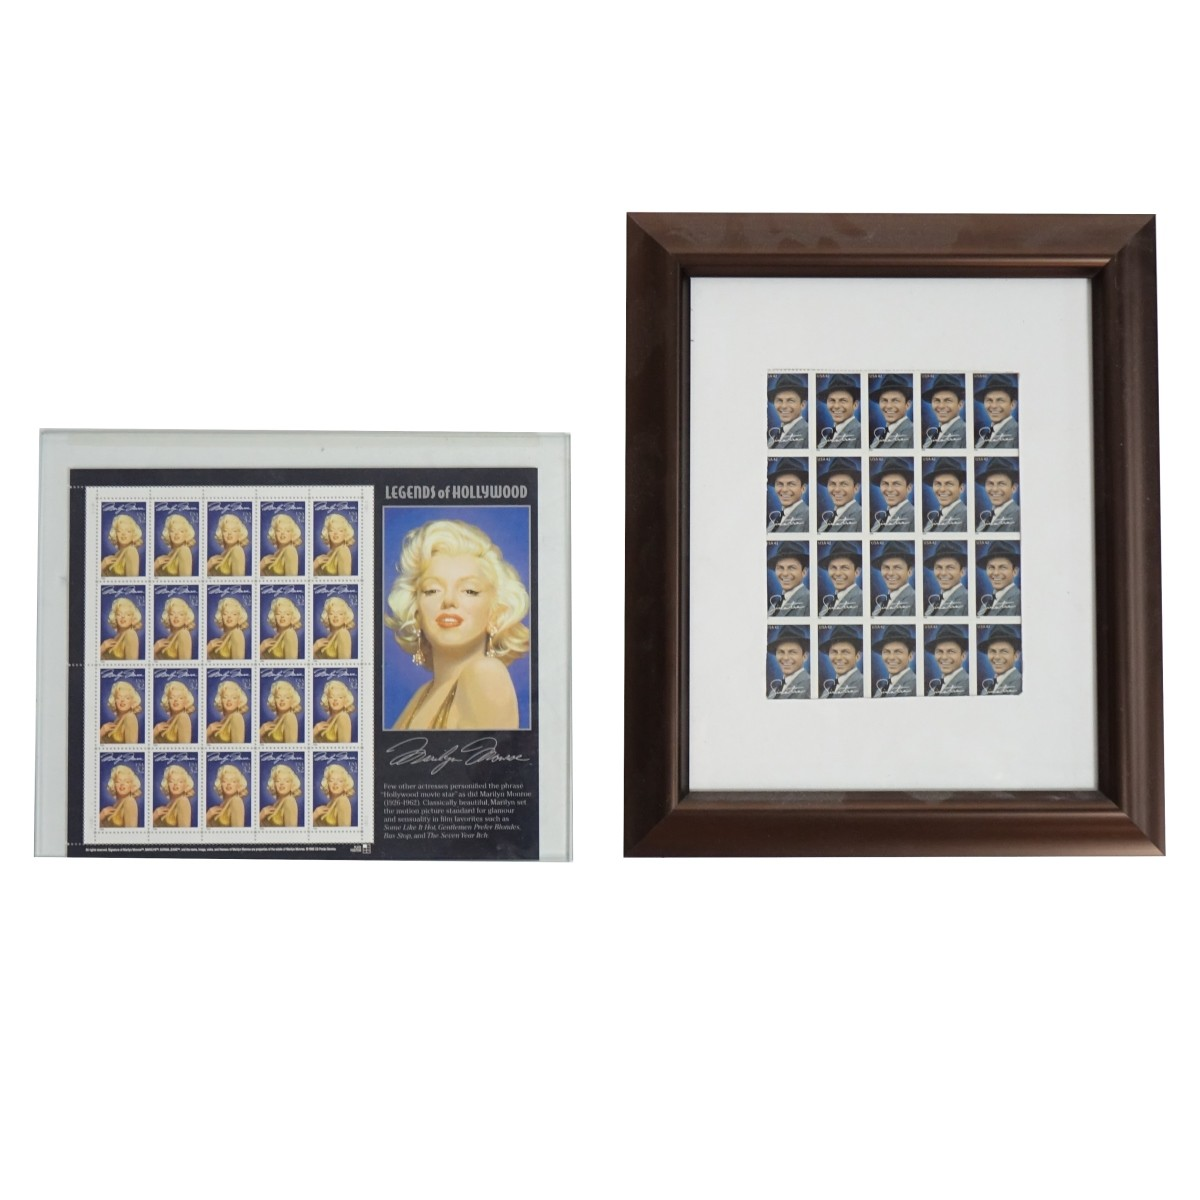 Two (2) Stamp Sheets Presented in Frames